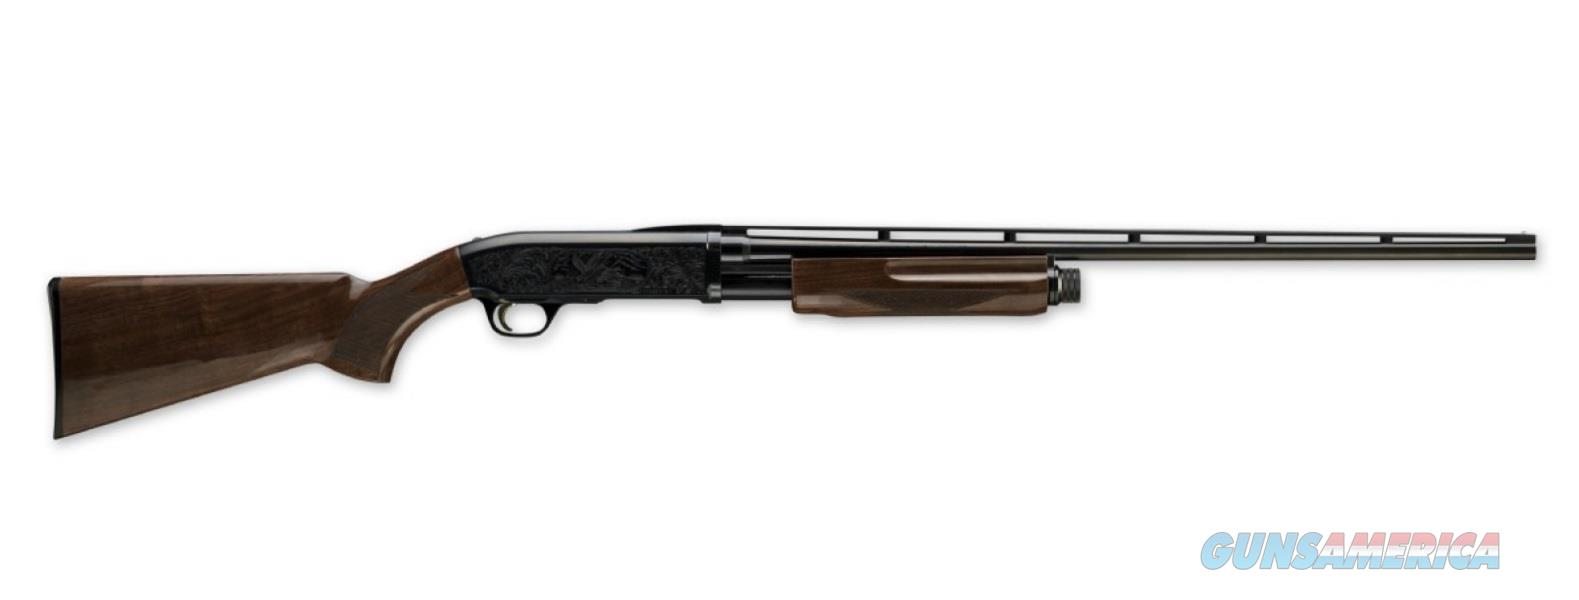 Browning BPS MEDALLION 12/28 BL/WD 3 INVECTOR+ CHOKE TUBES  Guns > Shotguns > Browning Shotguns > Pump Action